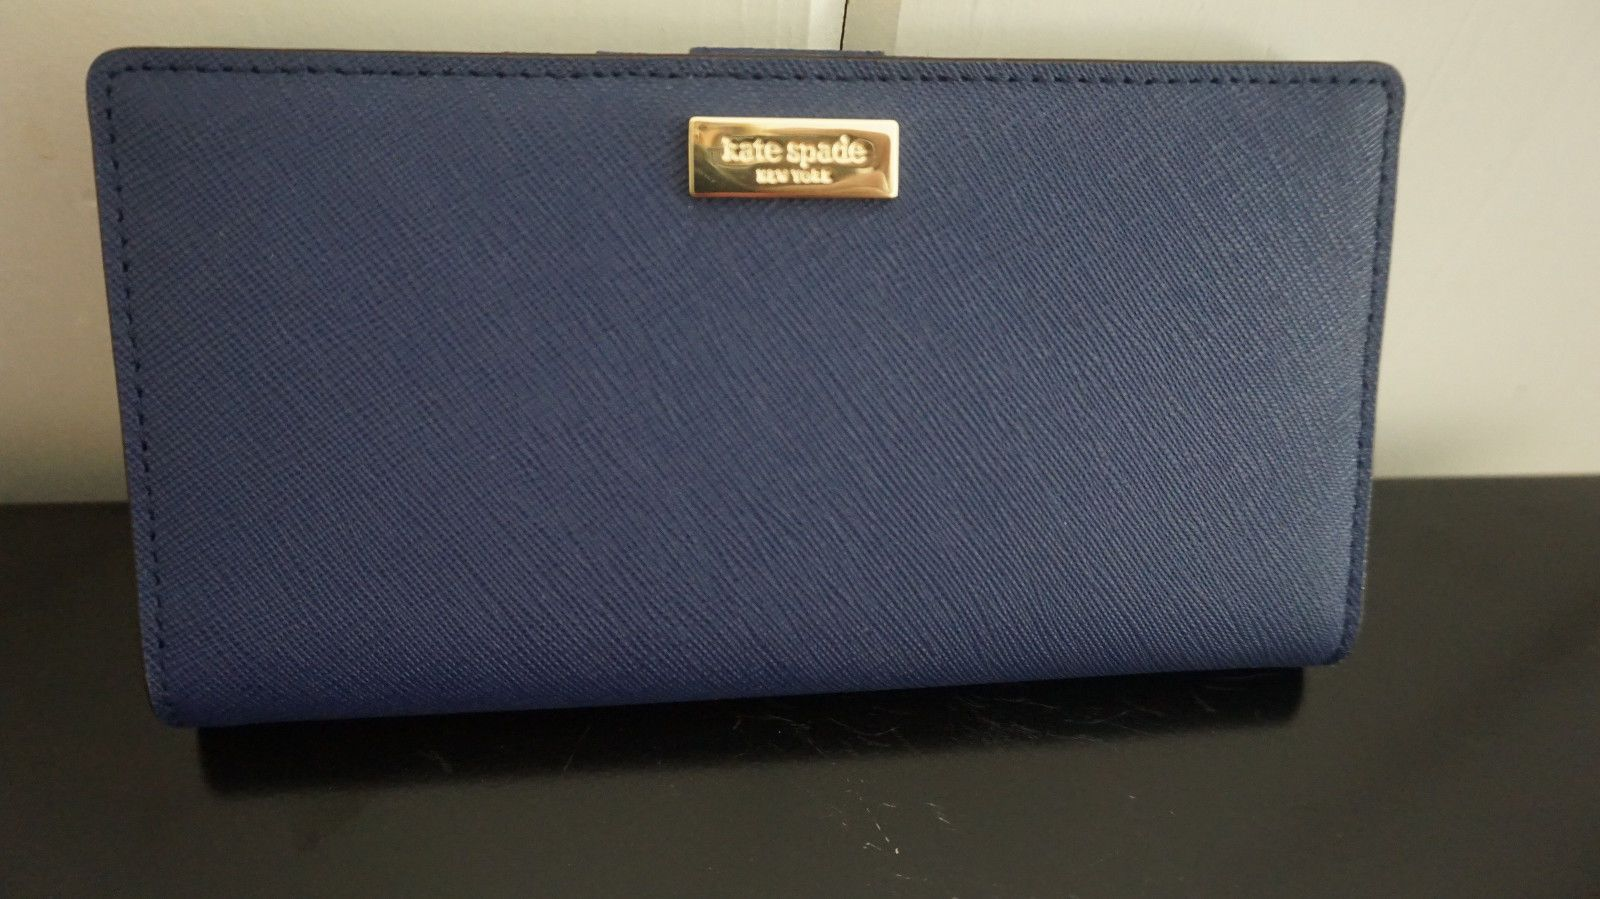 NWT KATE SPADE STACY NEWBURY LANE WALLET INDIGO WLRU1601 https://t.co/tZgoN5dbf6 https://t.co/cpZtvvK82z